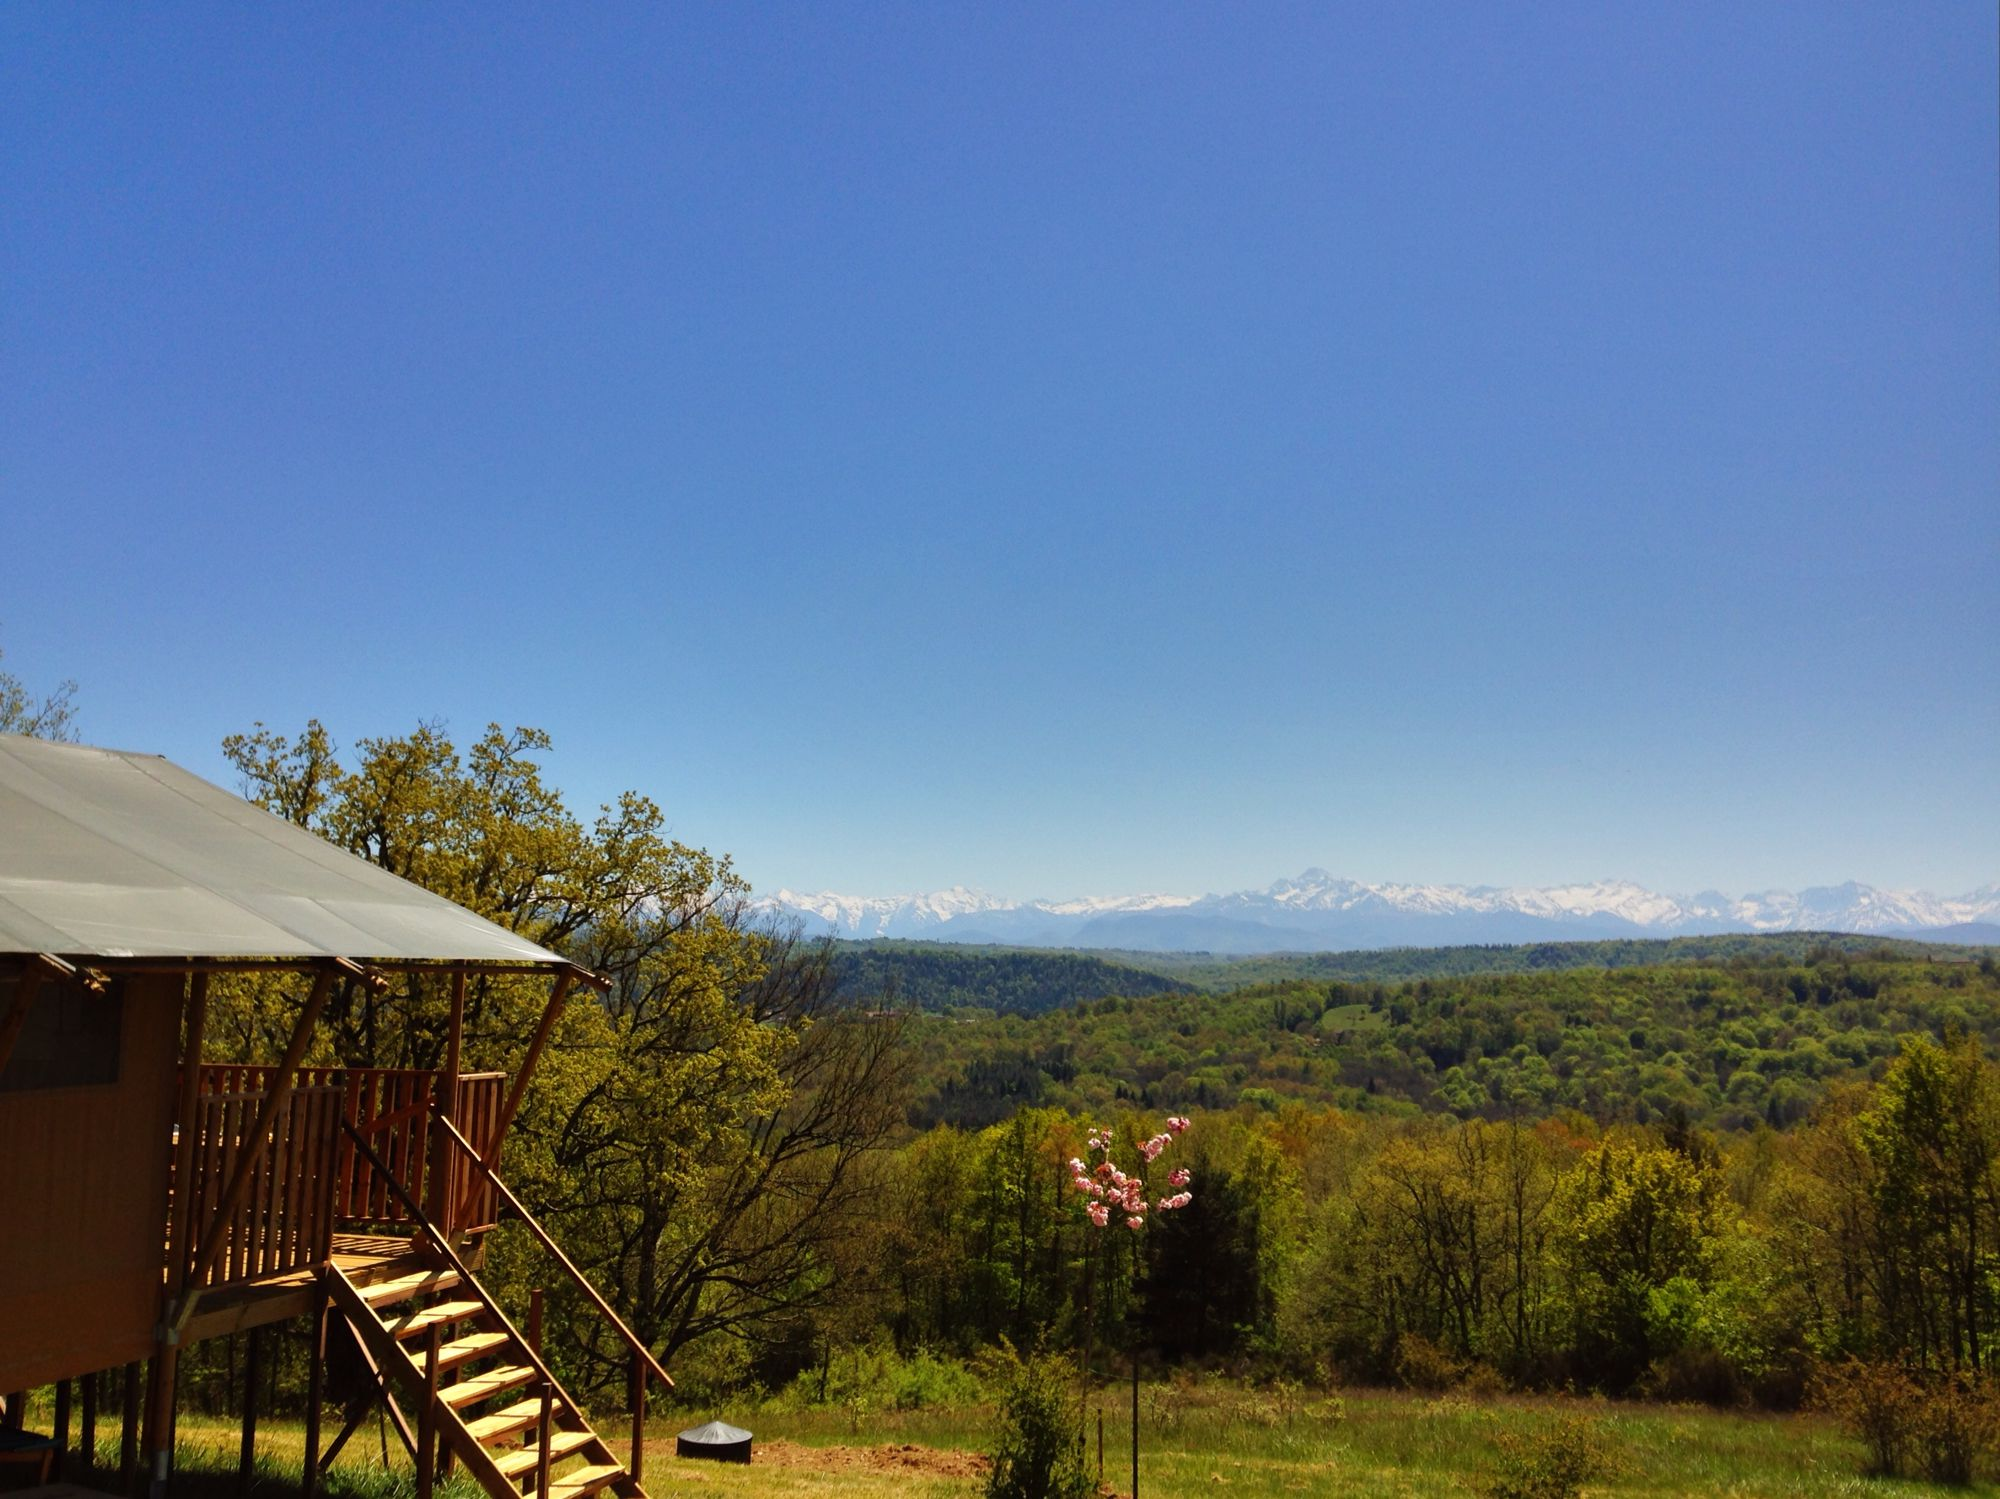 Glamping in the Midi-Pyrénées: Luxury safari tent glamping in the sunny Haute Garonne region of South-West France.